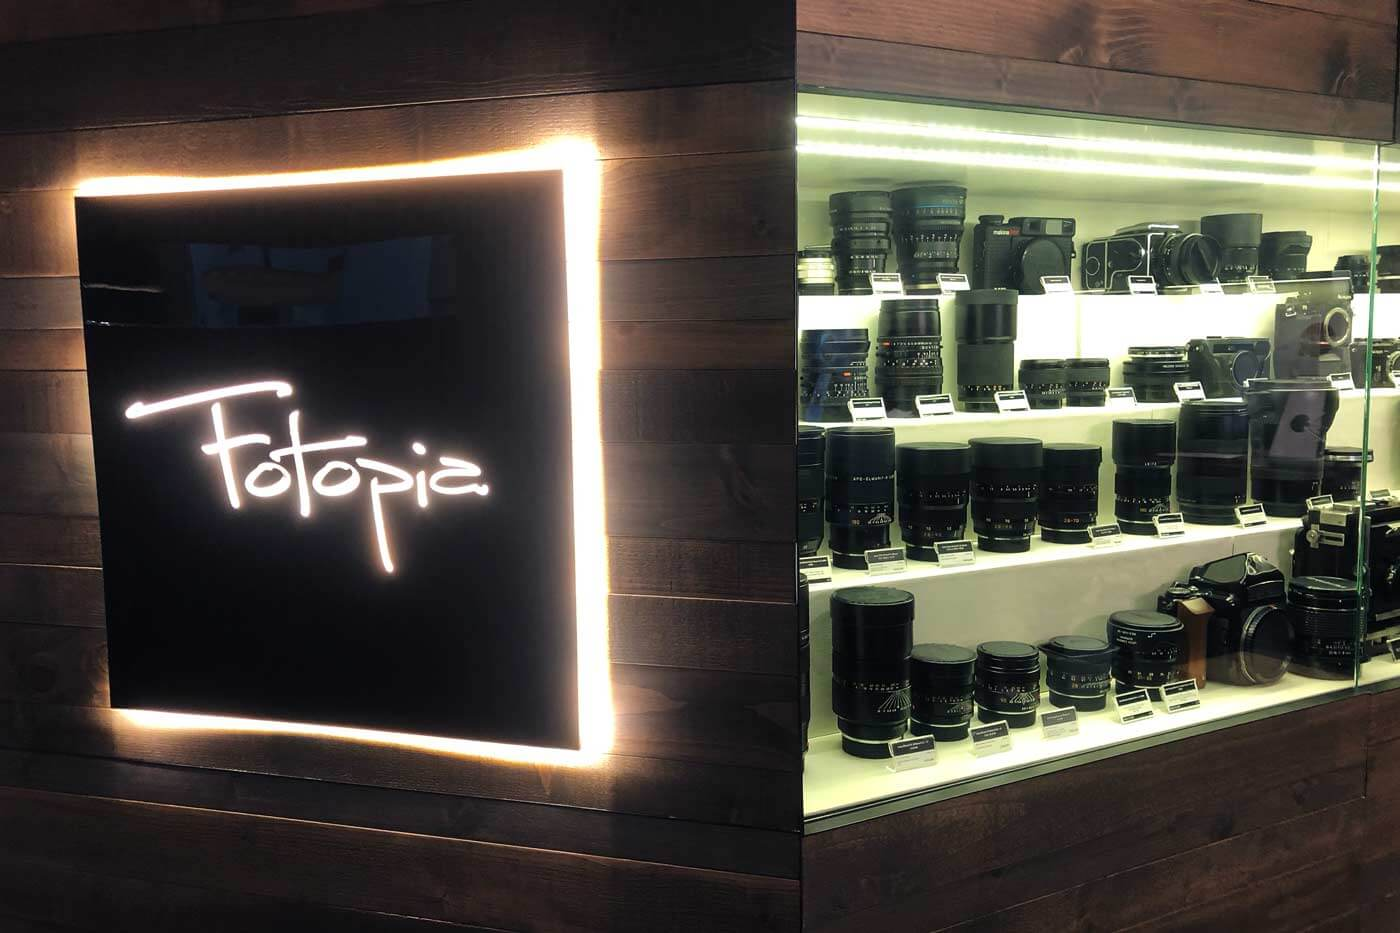 Camera-shop-shops-hong-kong-hk-location-guide-tips-purchase-consignment-second-hand-pre-owned-lenses-cameras-fotopia-display-cabinet-leica-specialist-medium-format-logo